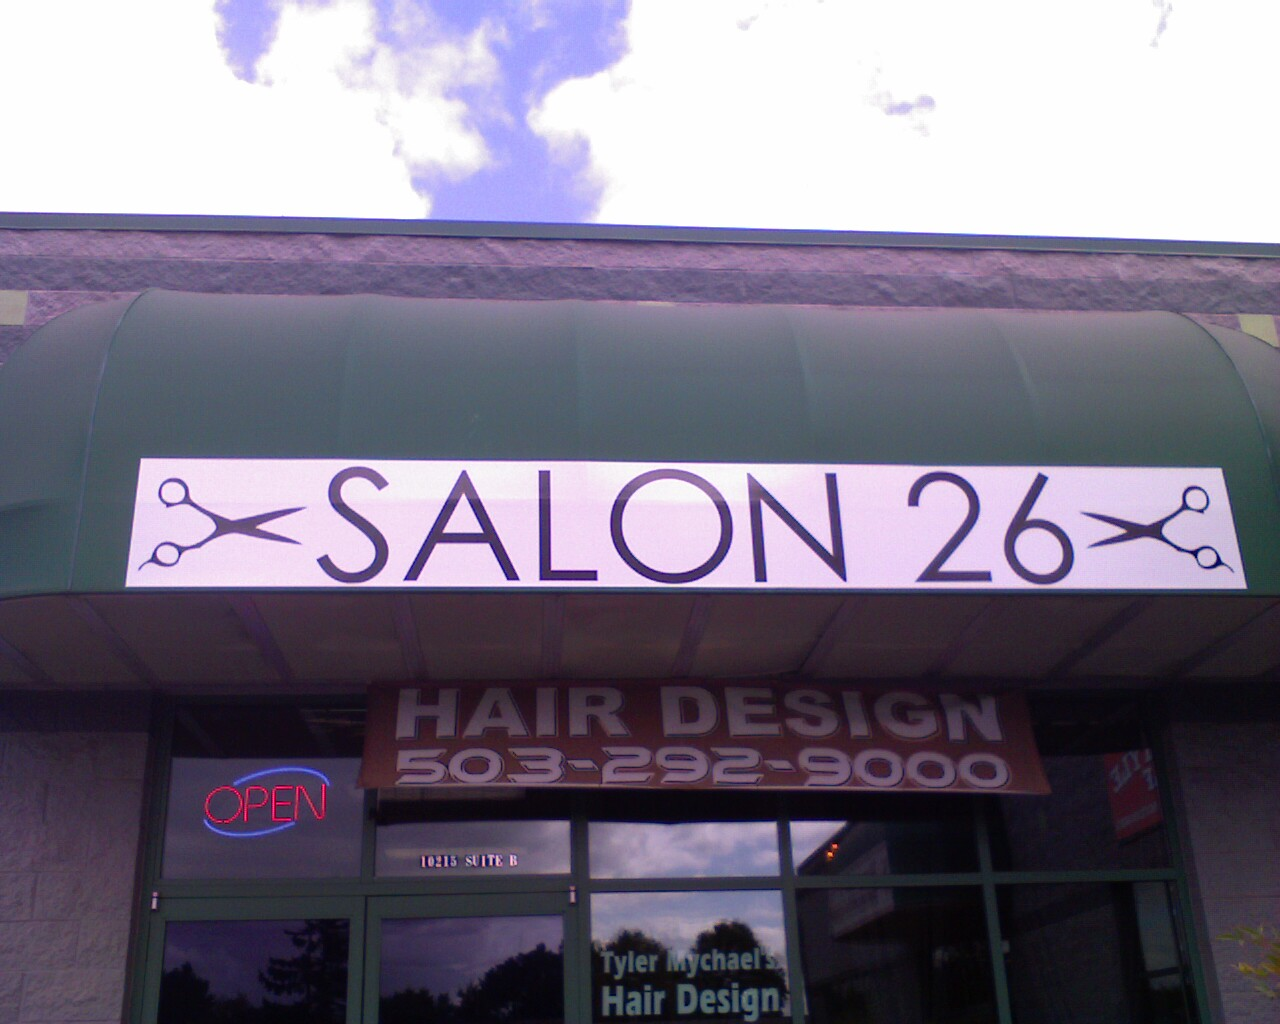 Salon 26, 10215 SW Park Way suite B, Portland, Oregon, 97225